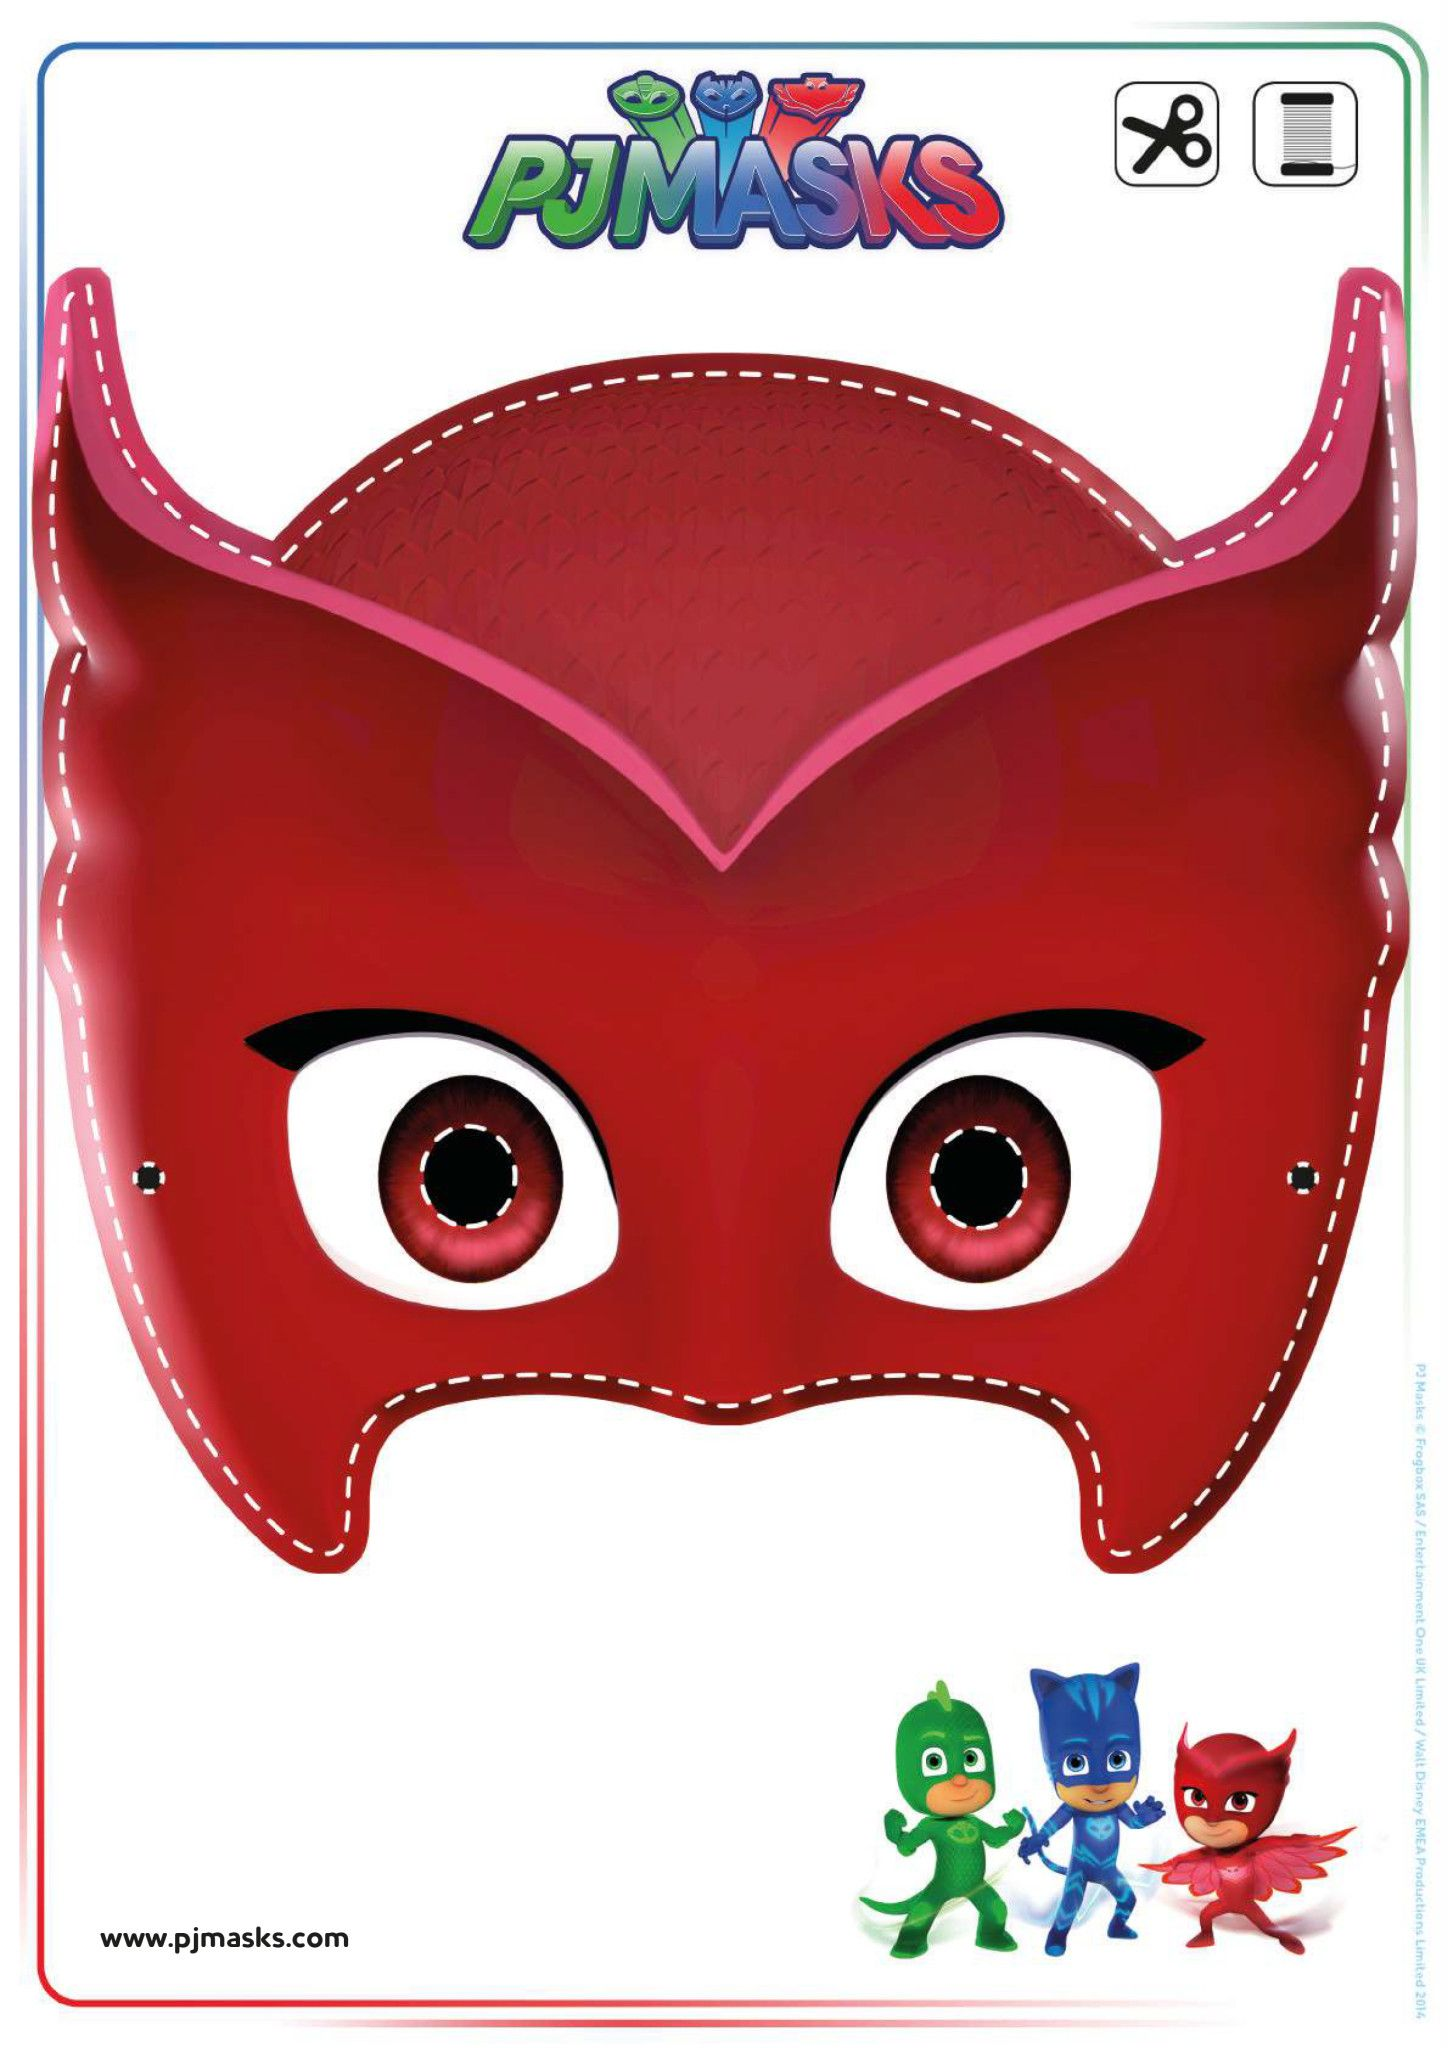 image relating to Pj Masks Printable Images named Printables - PJ Masks Owlette, Gekko, Catboy Masks